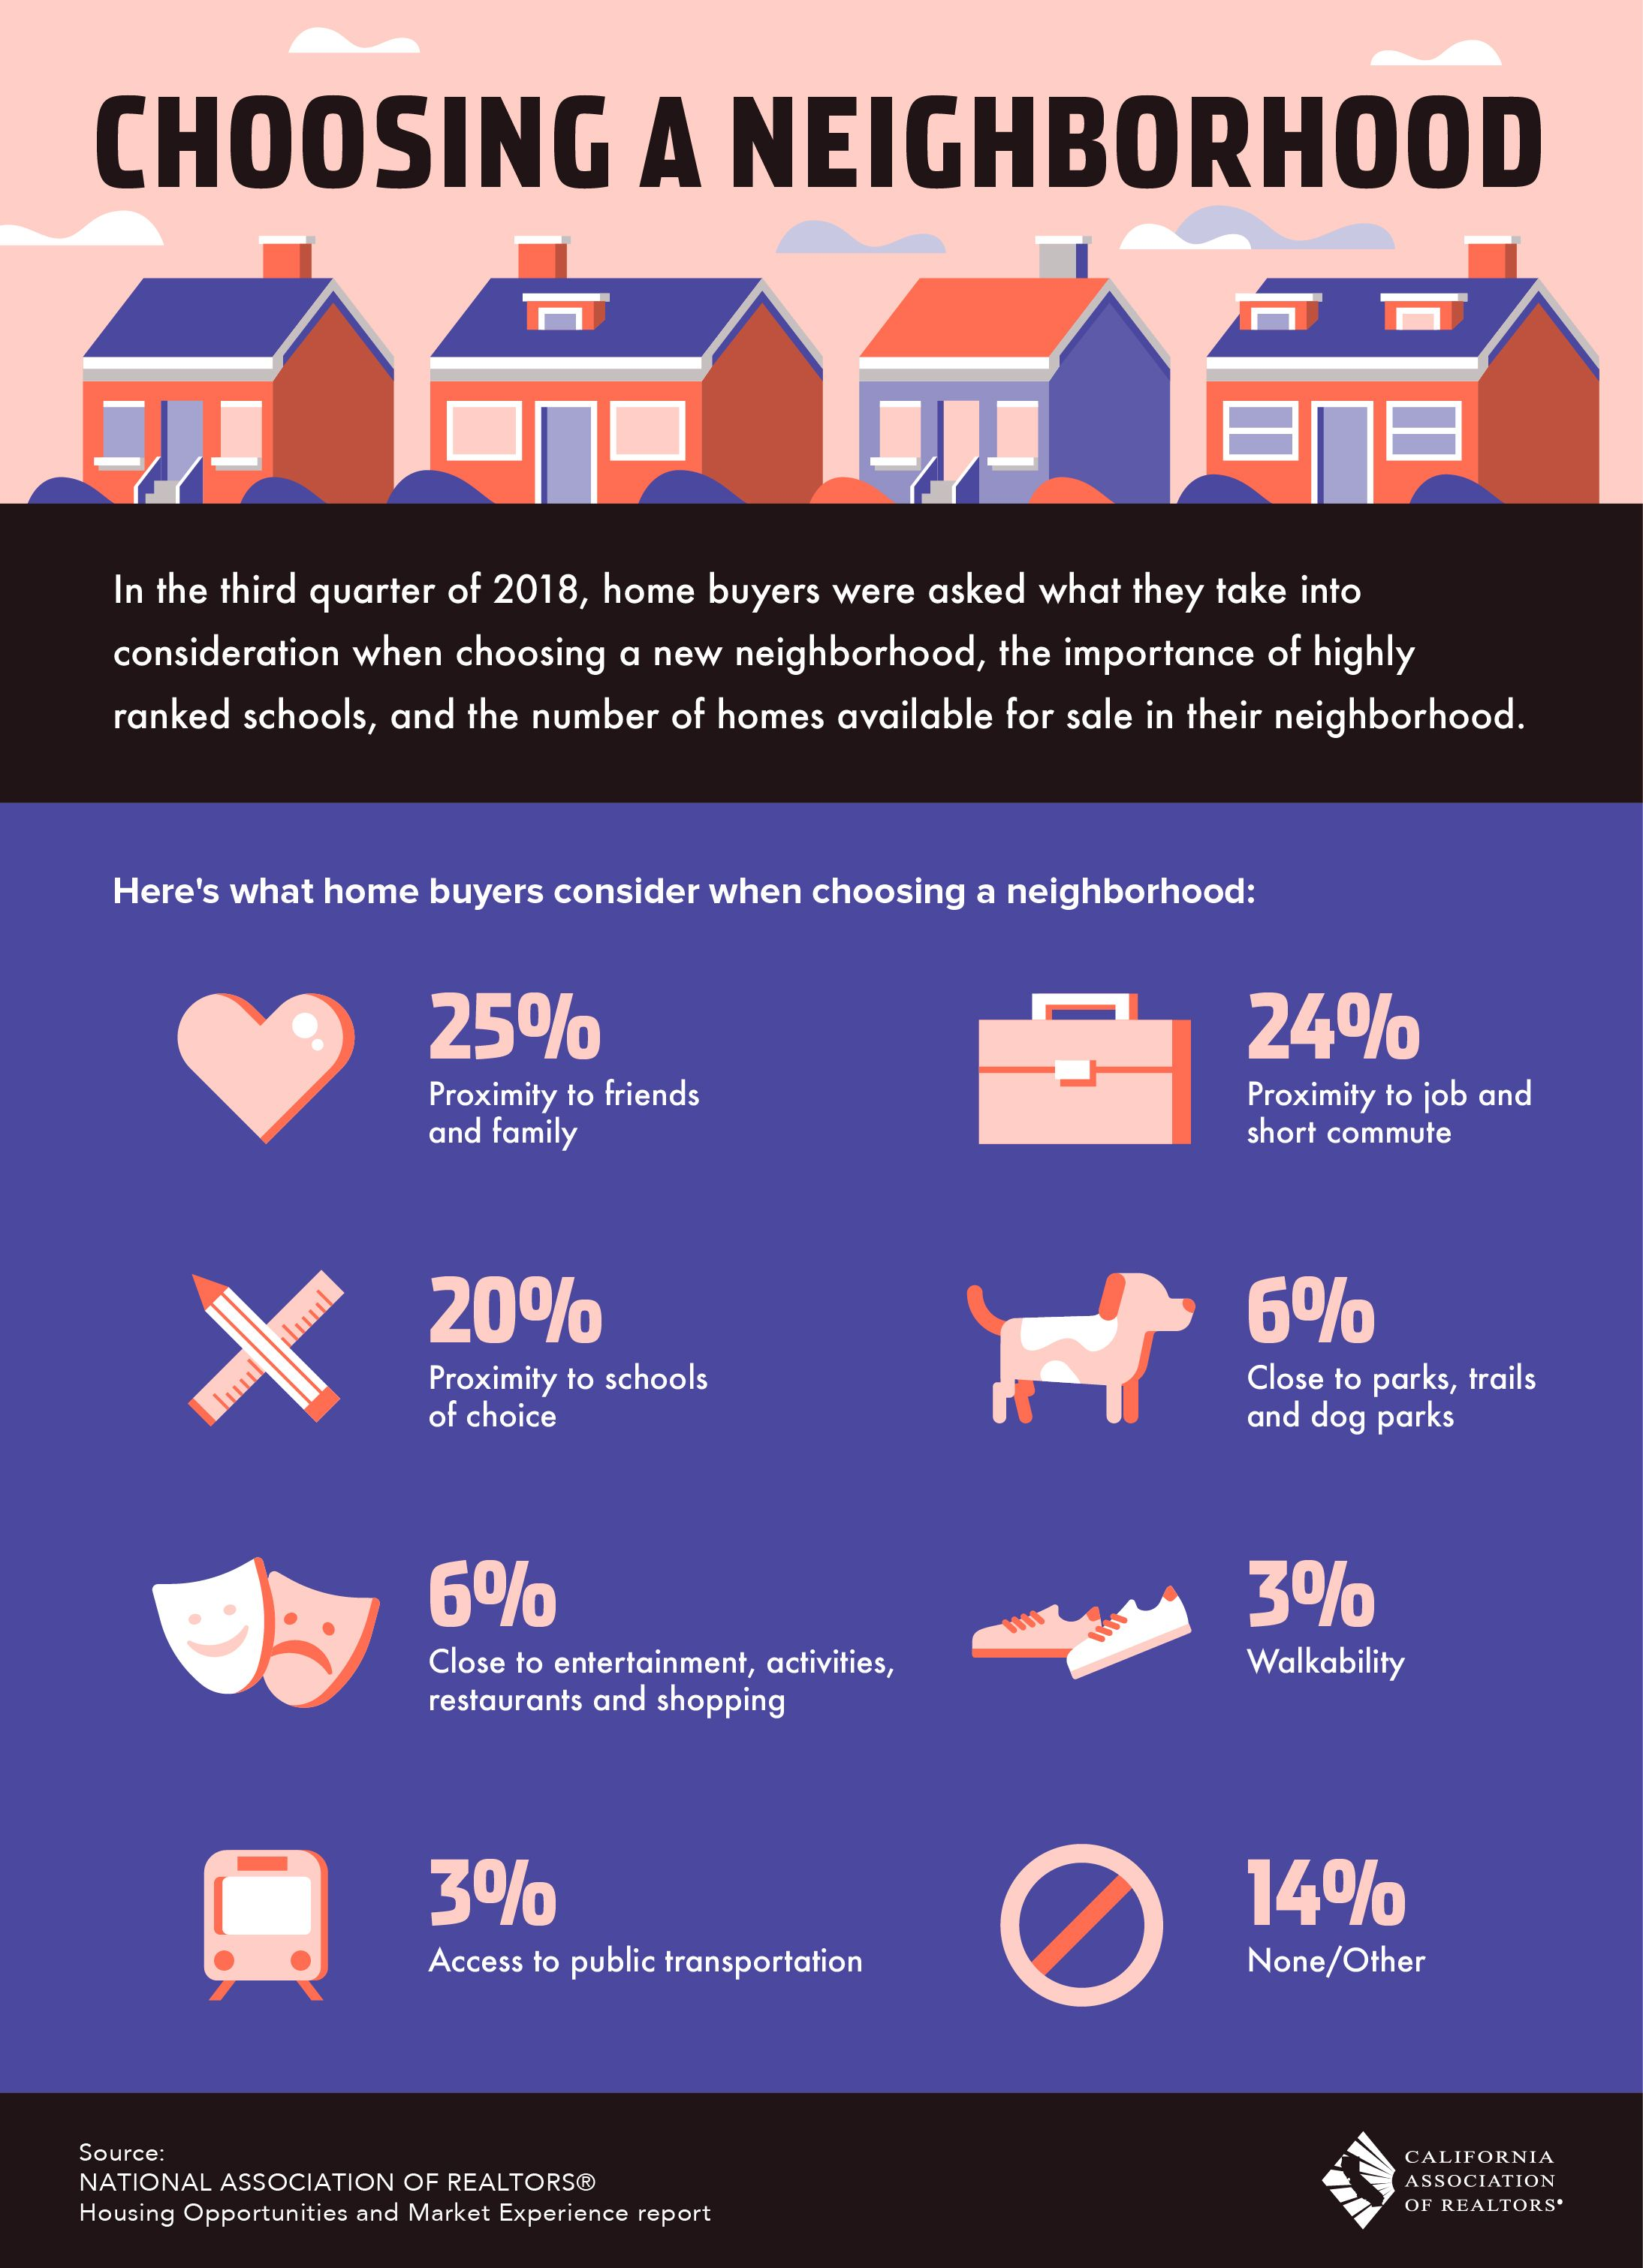 Here's what homebuyers consider when choosing a neighborhood